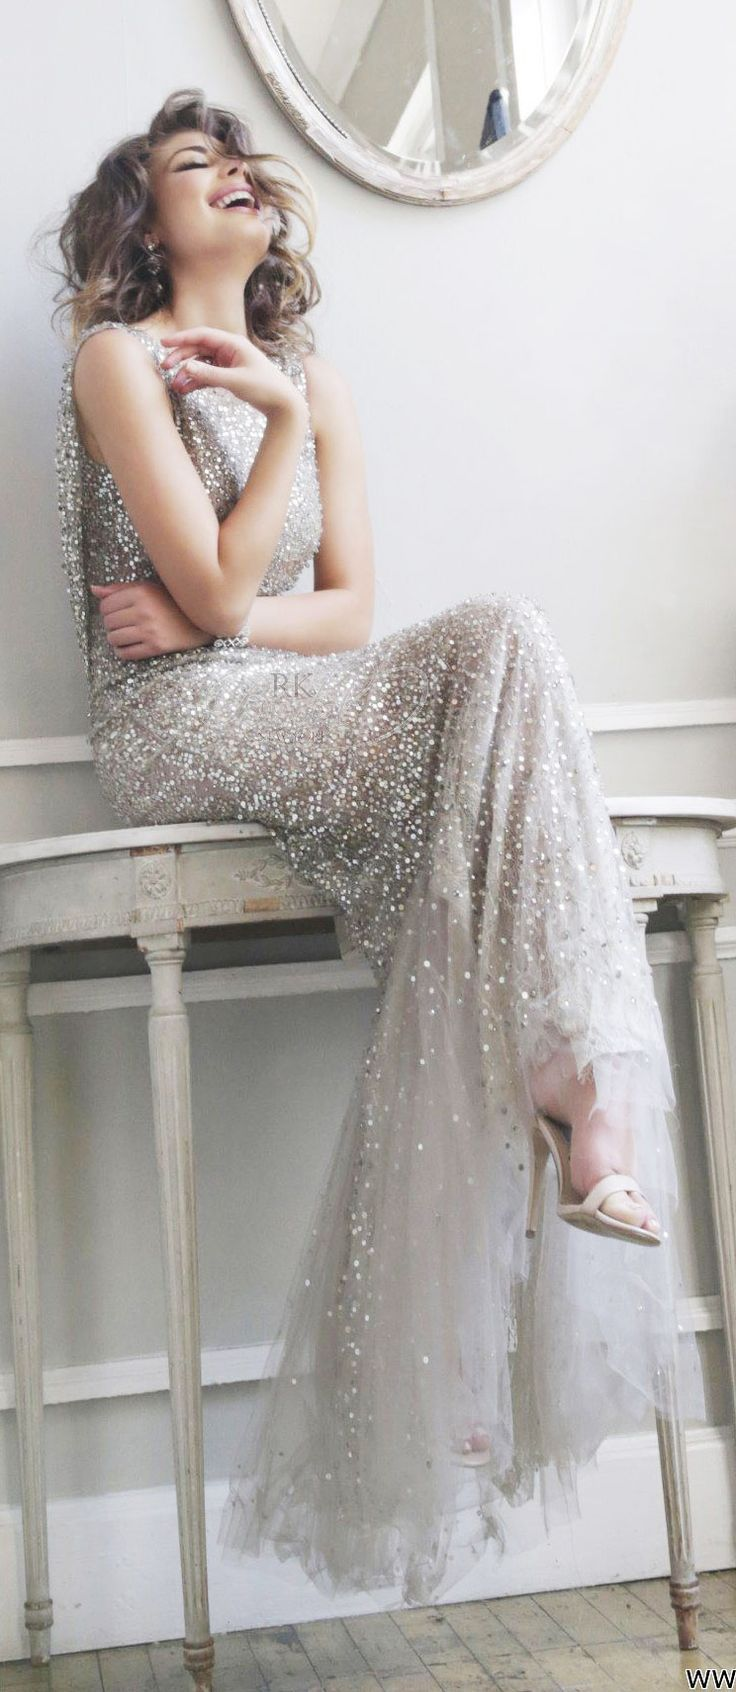 Sparkling gown